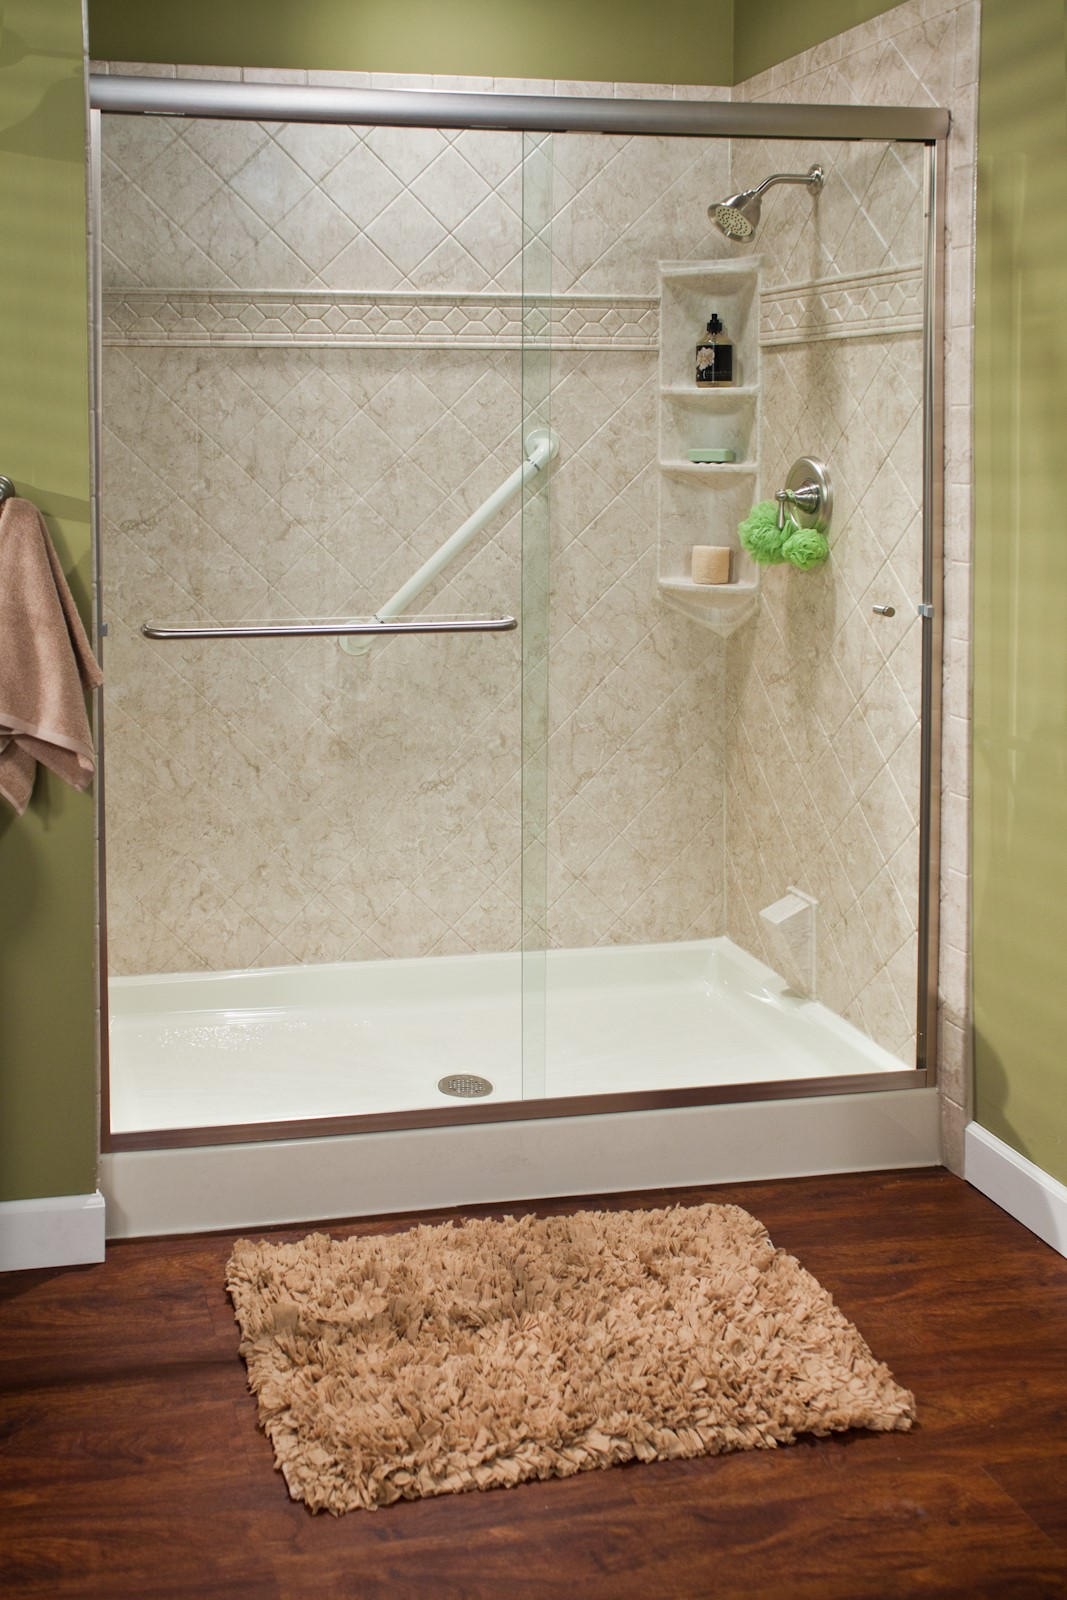 Boca Raton Shower Bases | Boca Raton Shower Base Replacement ...